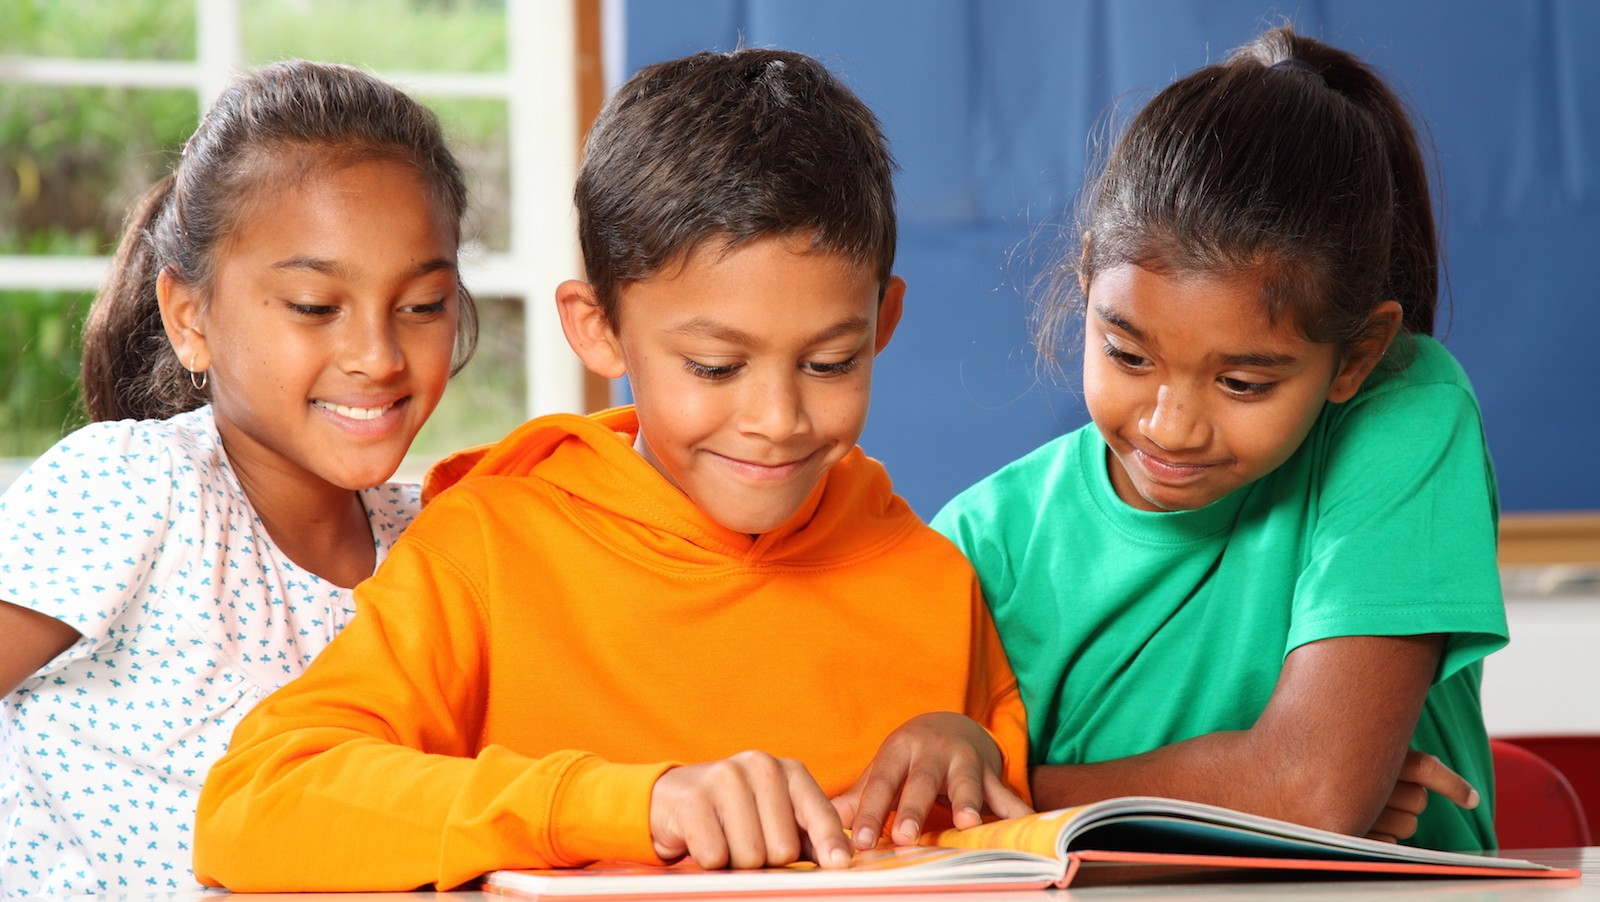 Cheerful young primary school children reading and learning together in the classroom